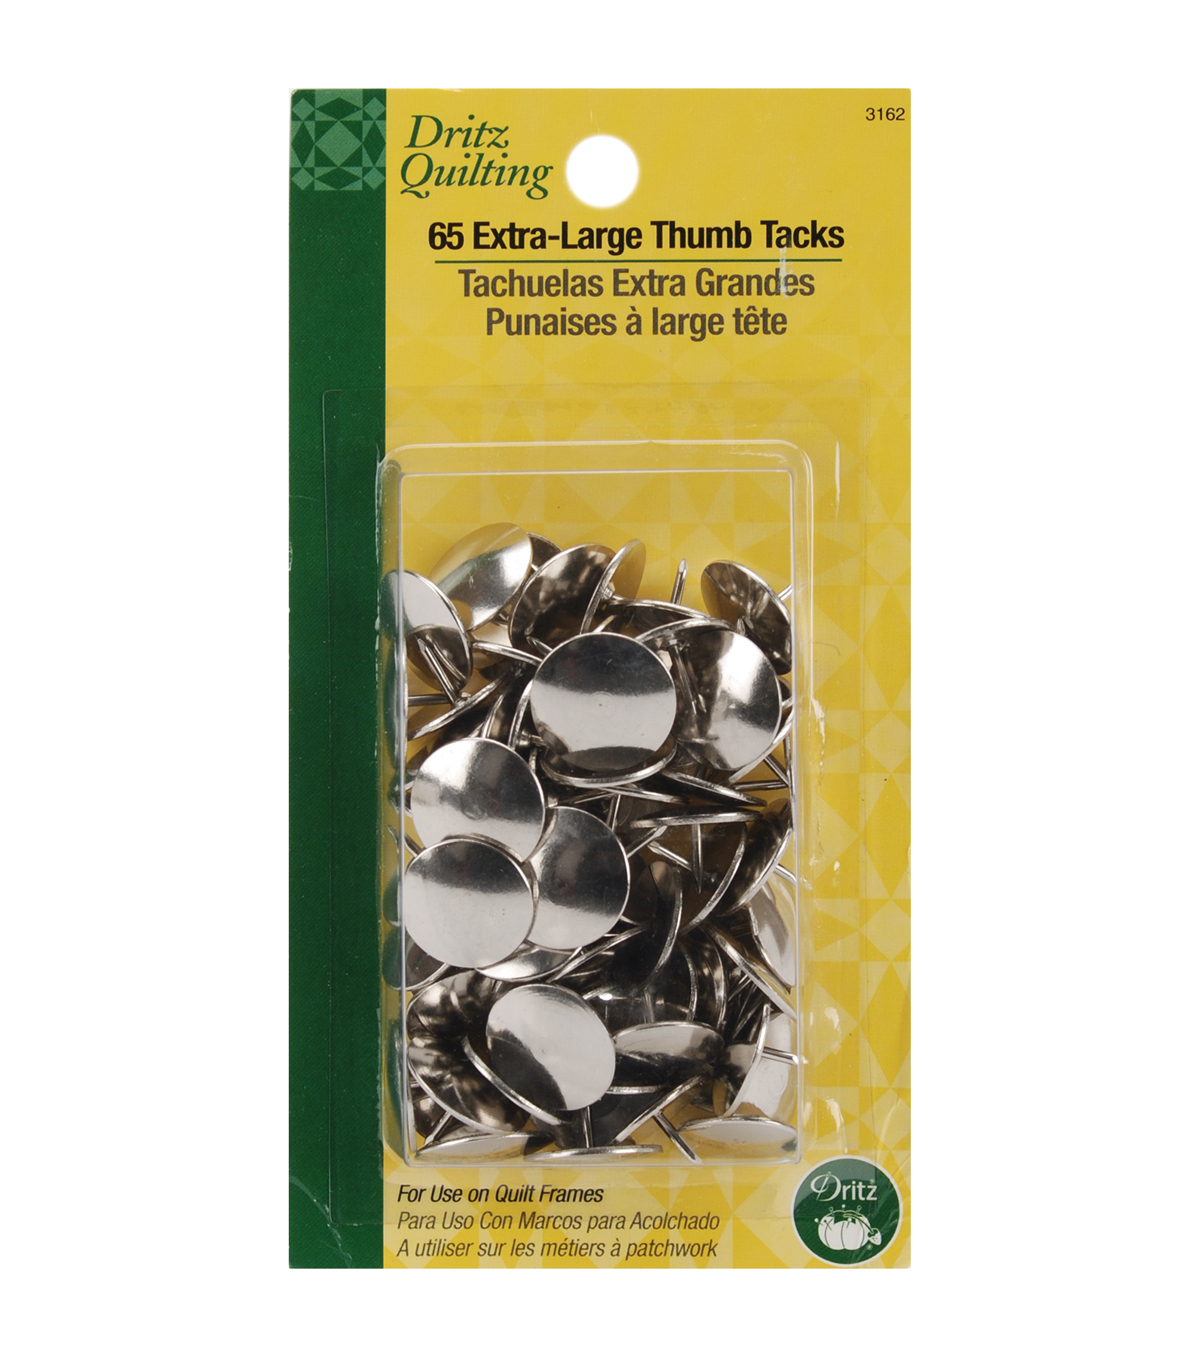 Dritz Quilting Thumb Tacks Extra Large